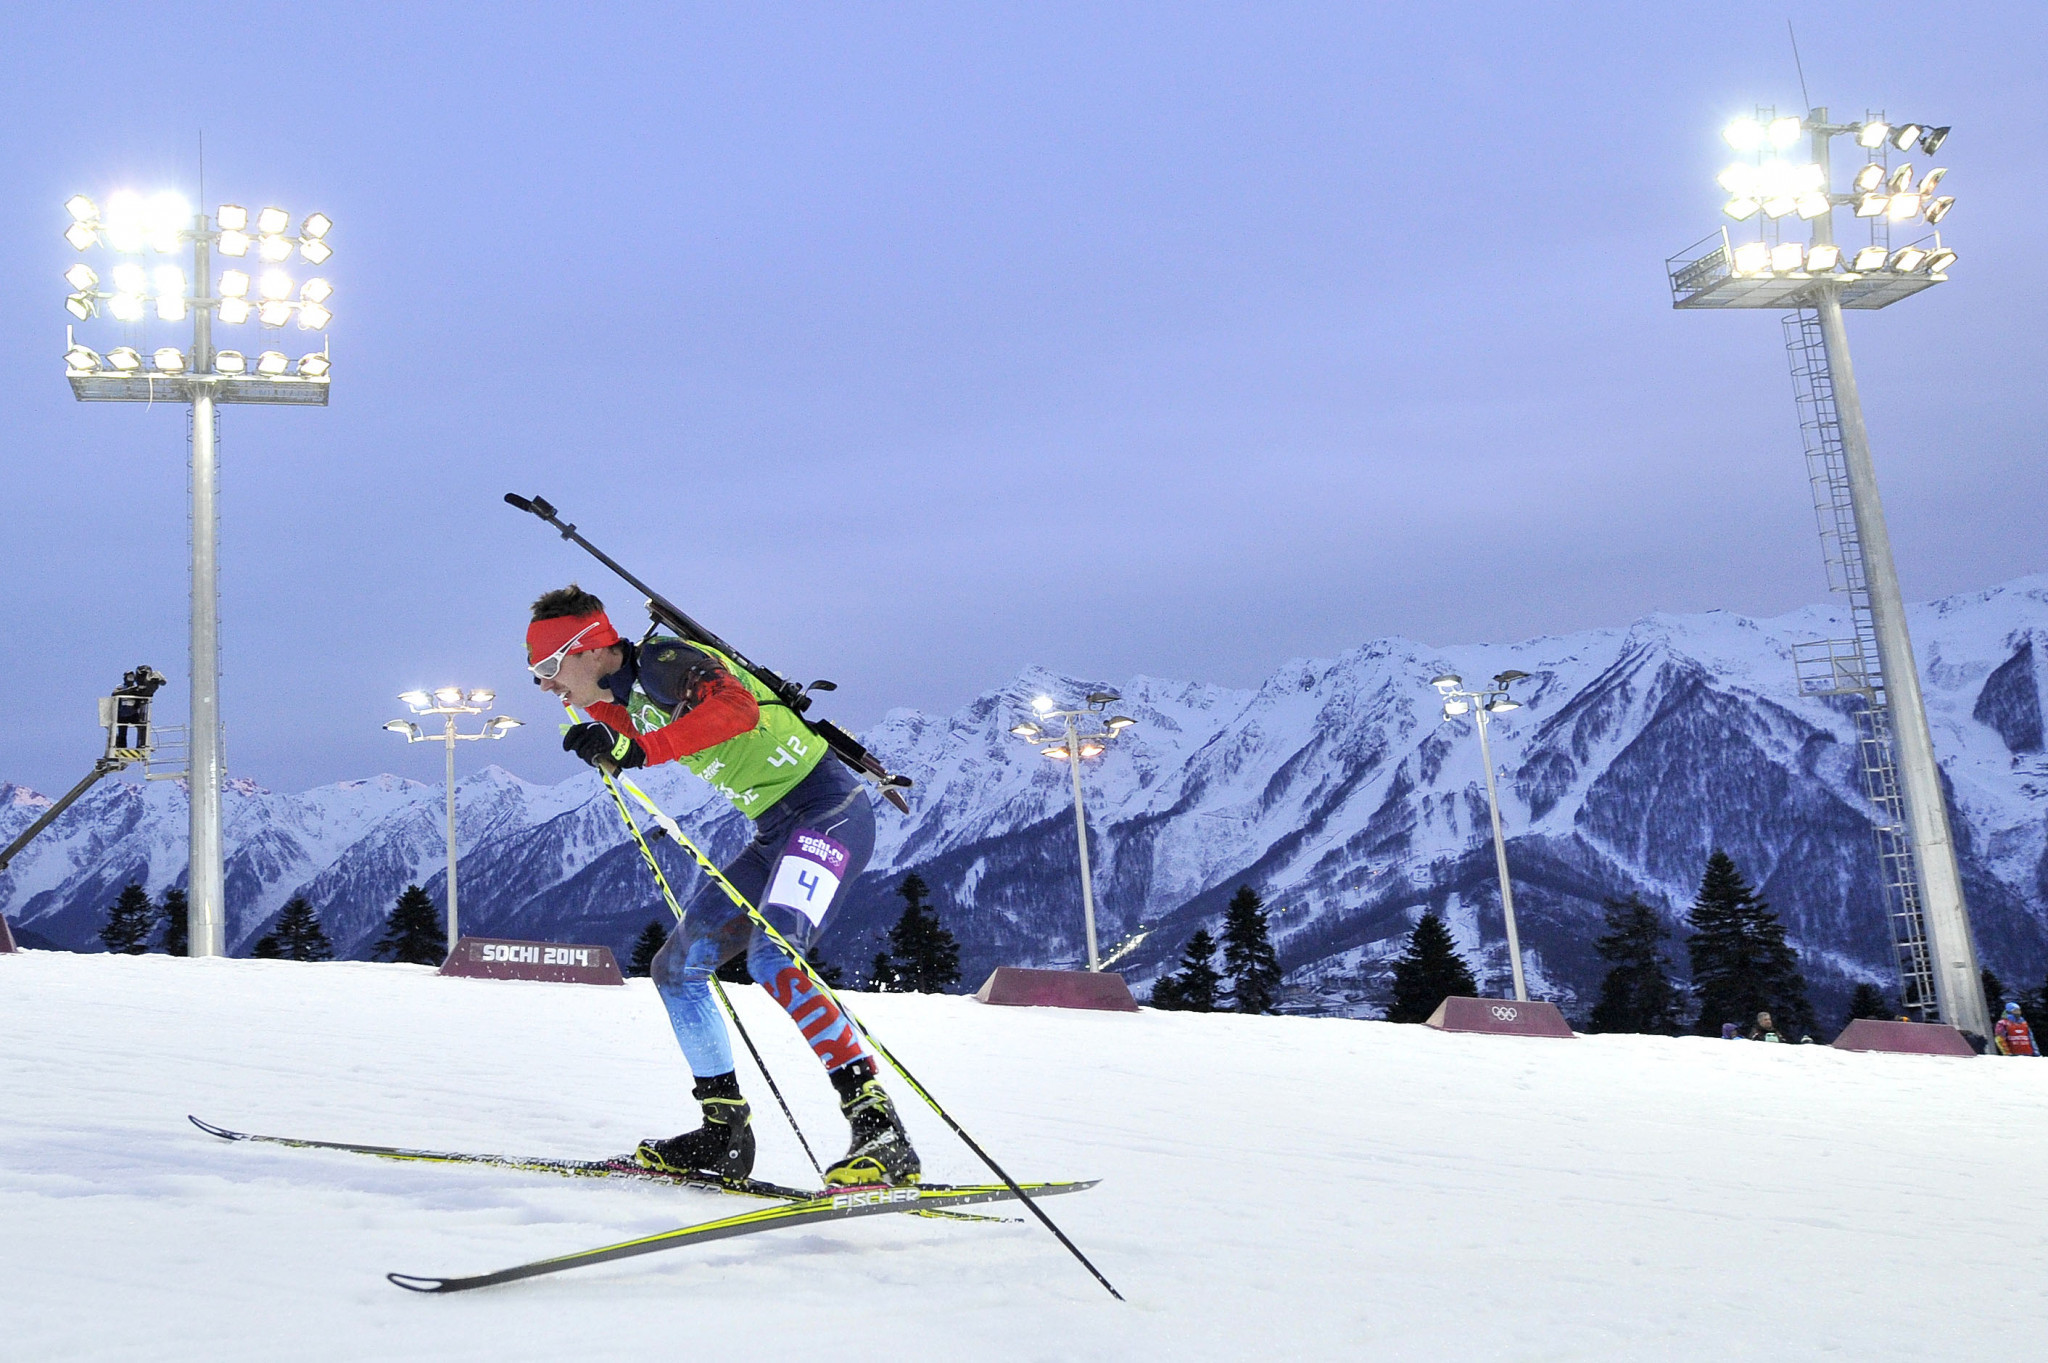 Double Olympic biathlon champion implicated in LIMS data facing separate doping case